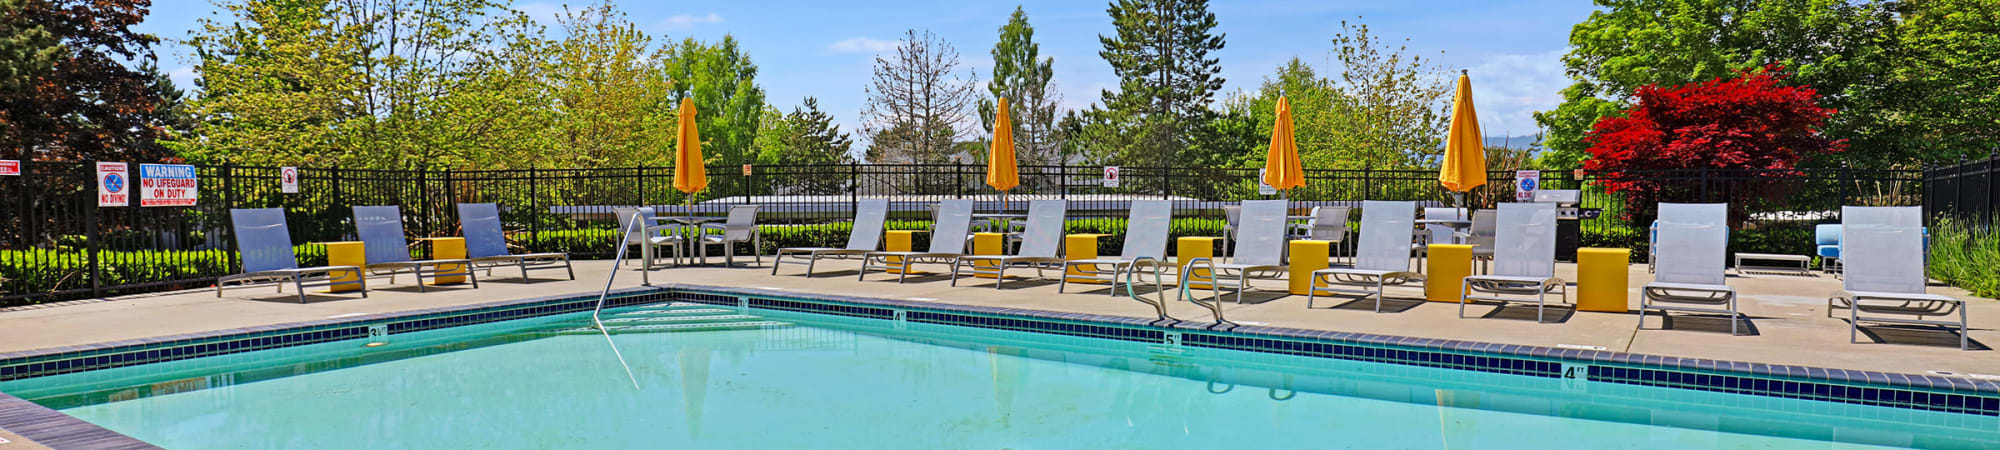 Contact Cascade Ridge to learn more about our outdoor pool, in Silverdale, Washington